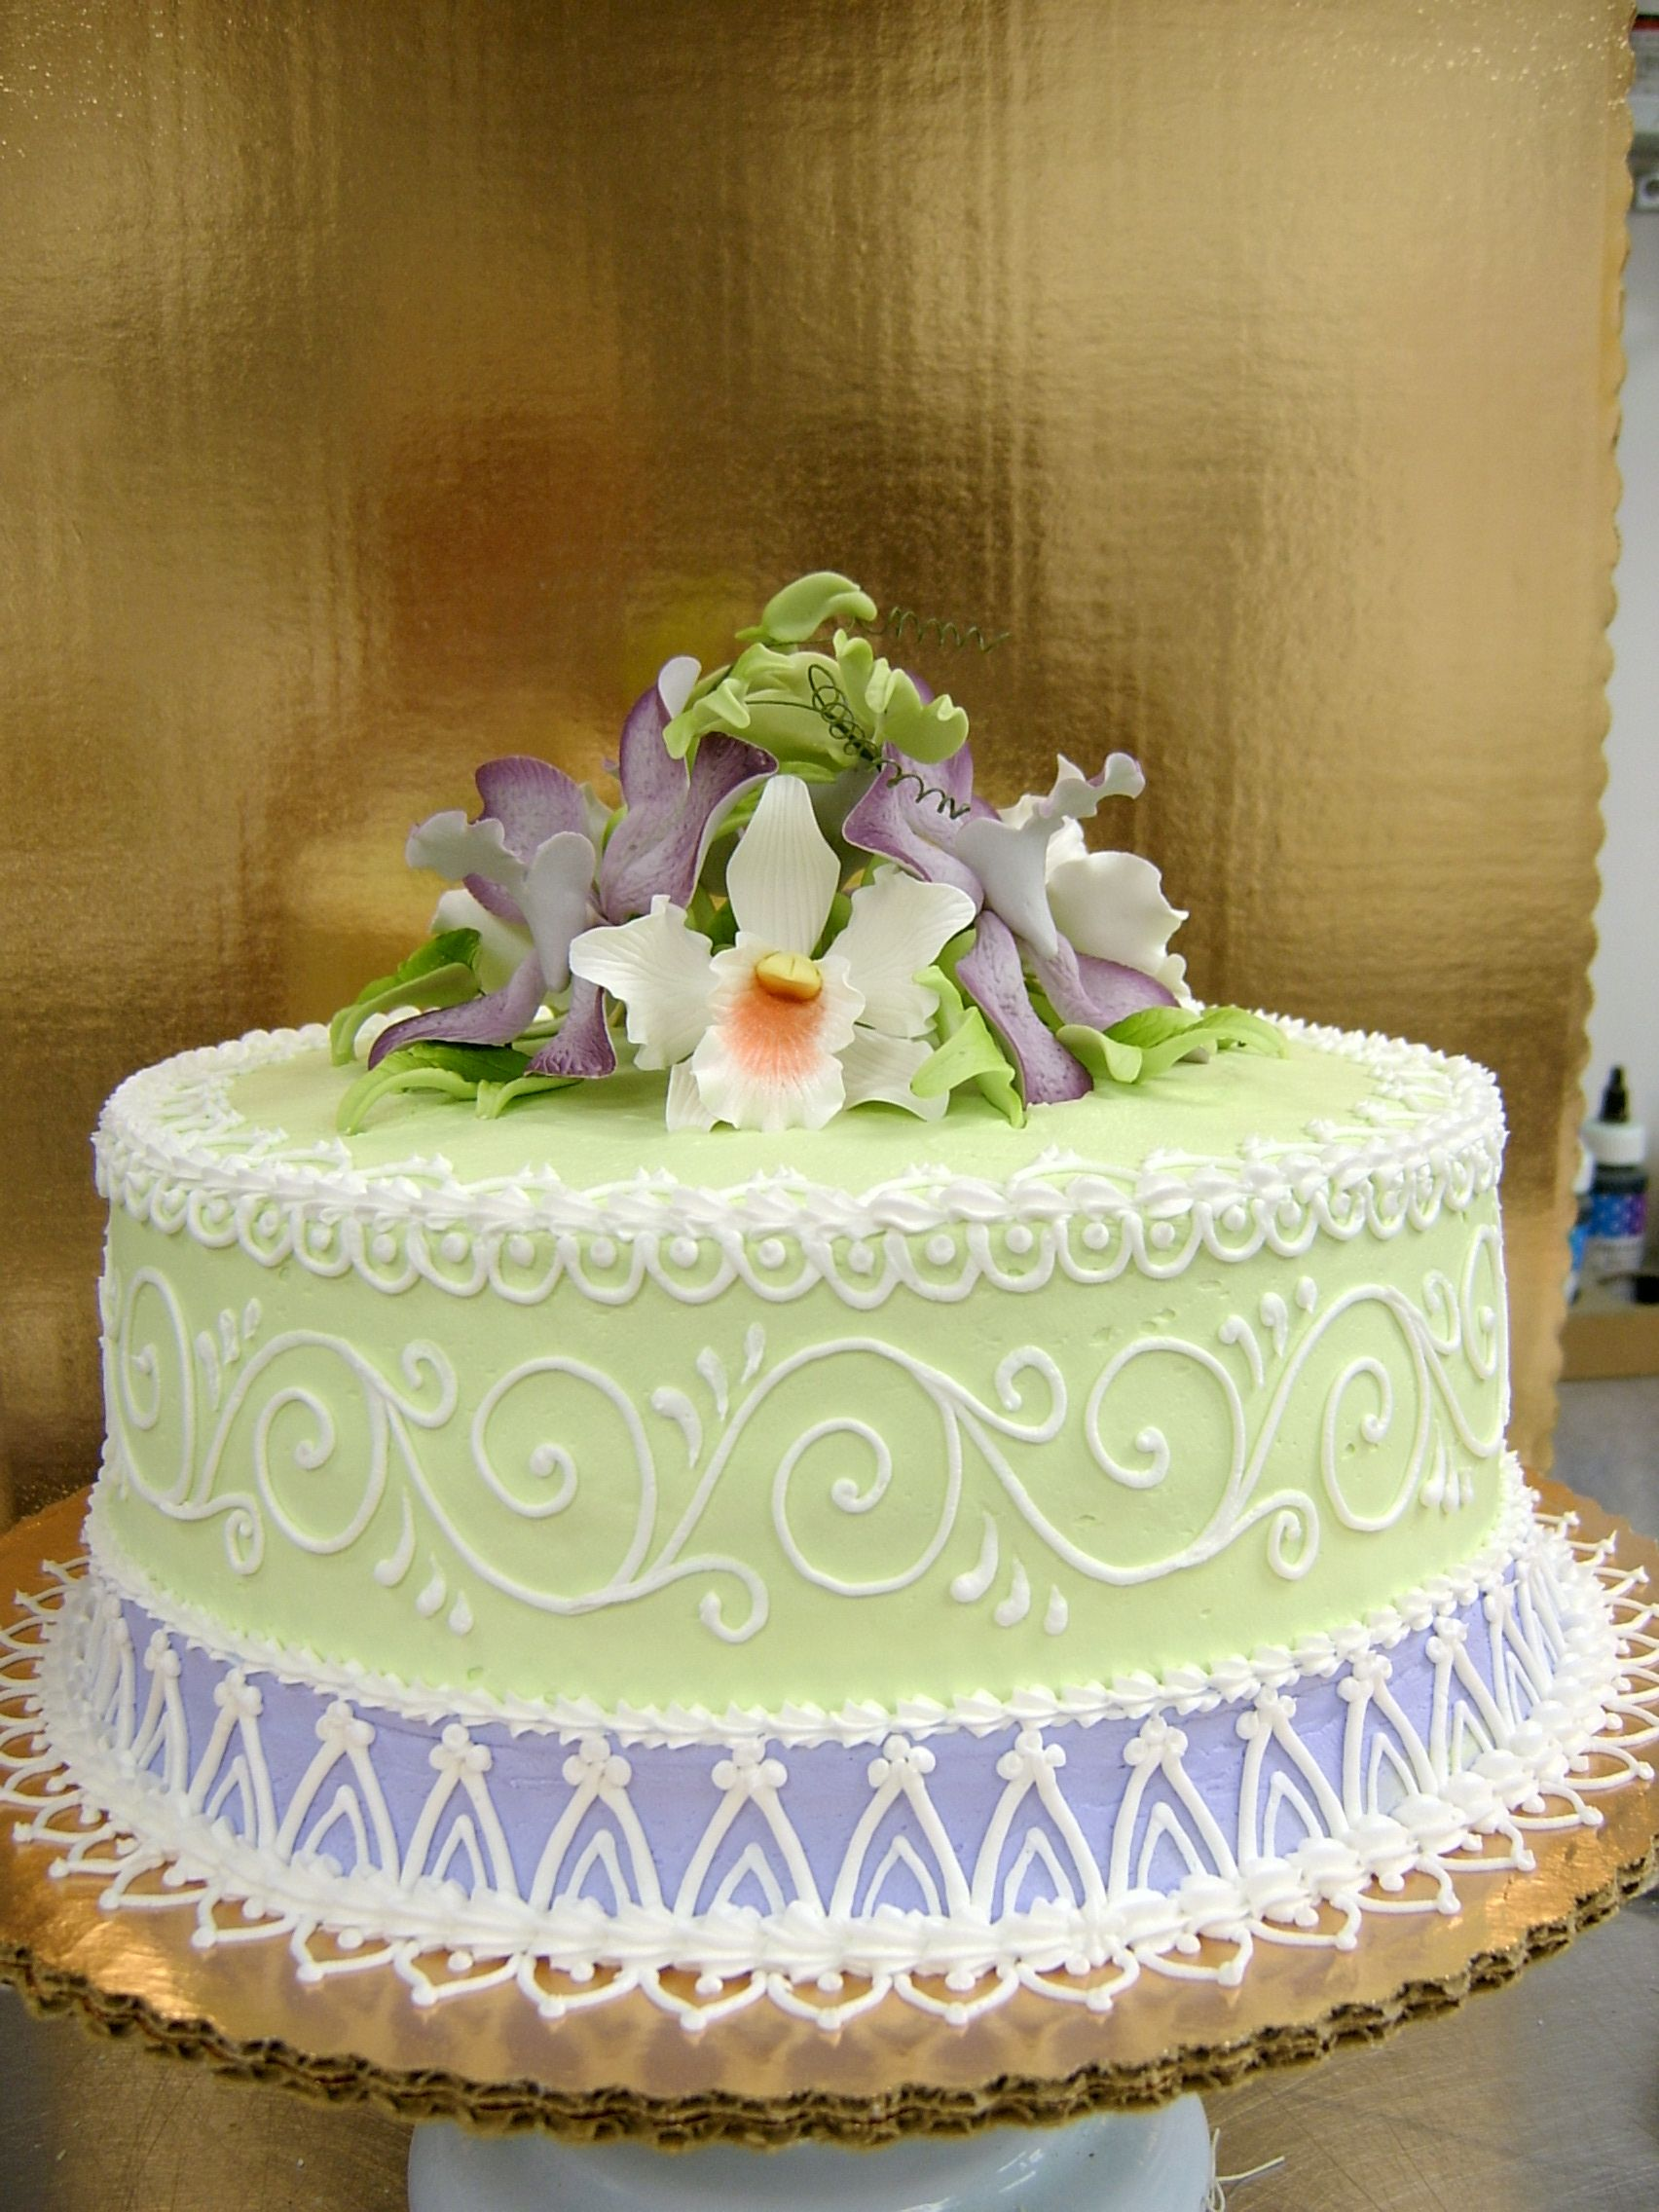 Pin by Le Phuong on cake and cupcake designs/ideas | Pinterest ...